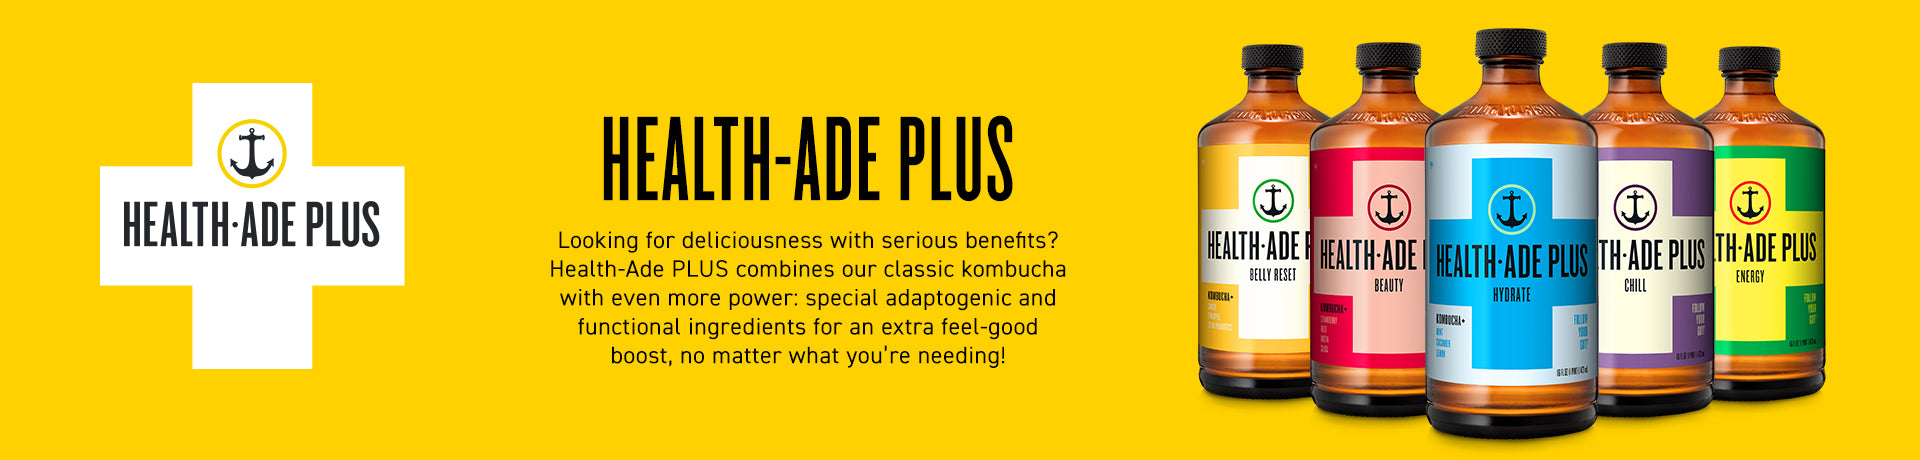 Health-Ade Plus Desktop Banner